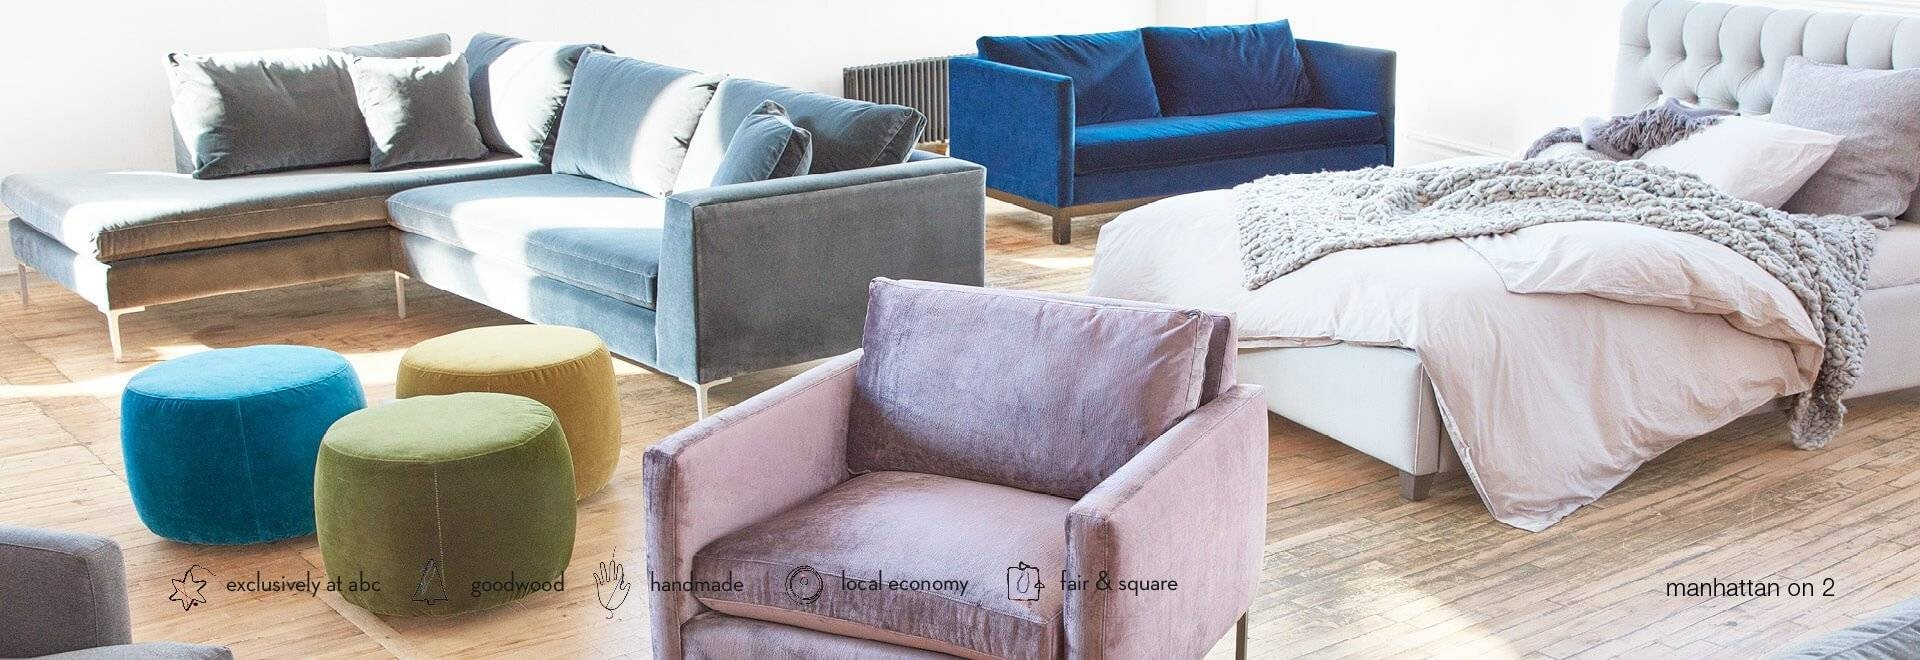 Cobble Hill Furniture At Abc Home In Cobble Hill Sofas (Image 5 Of 15)